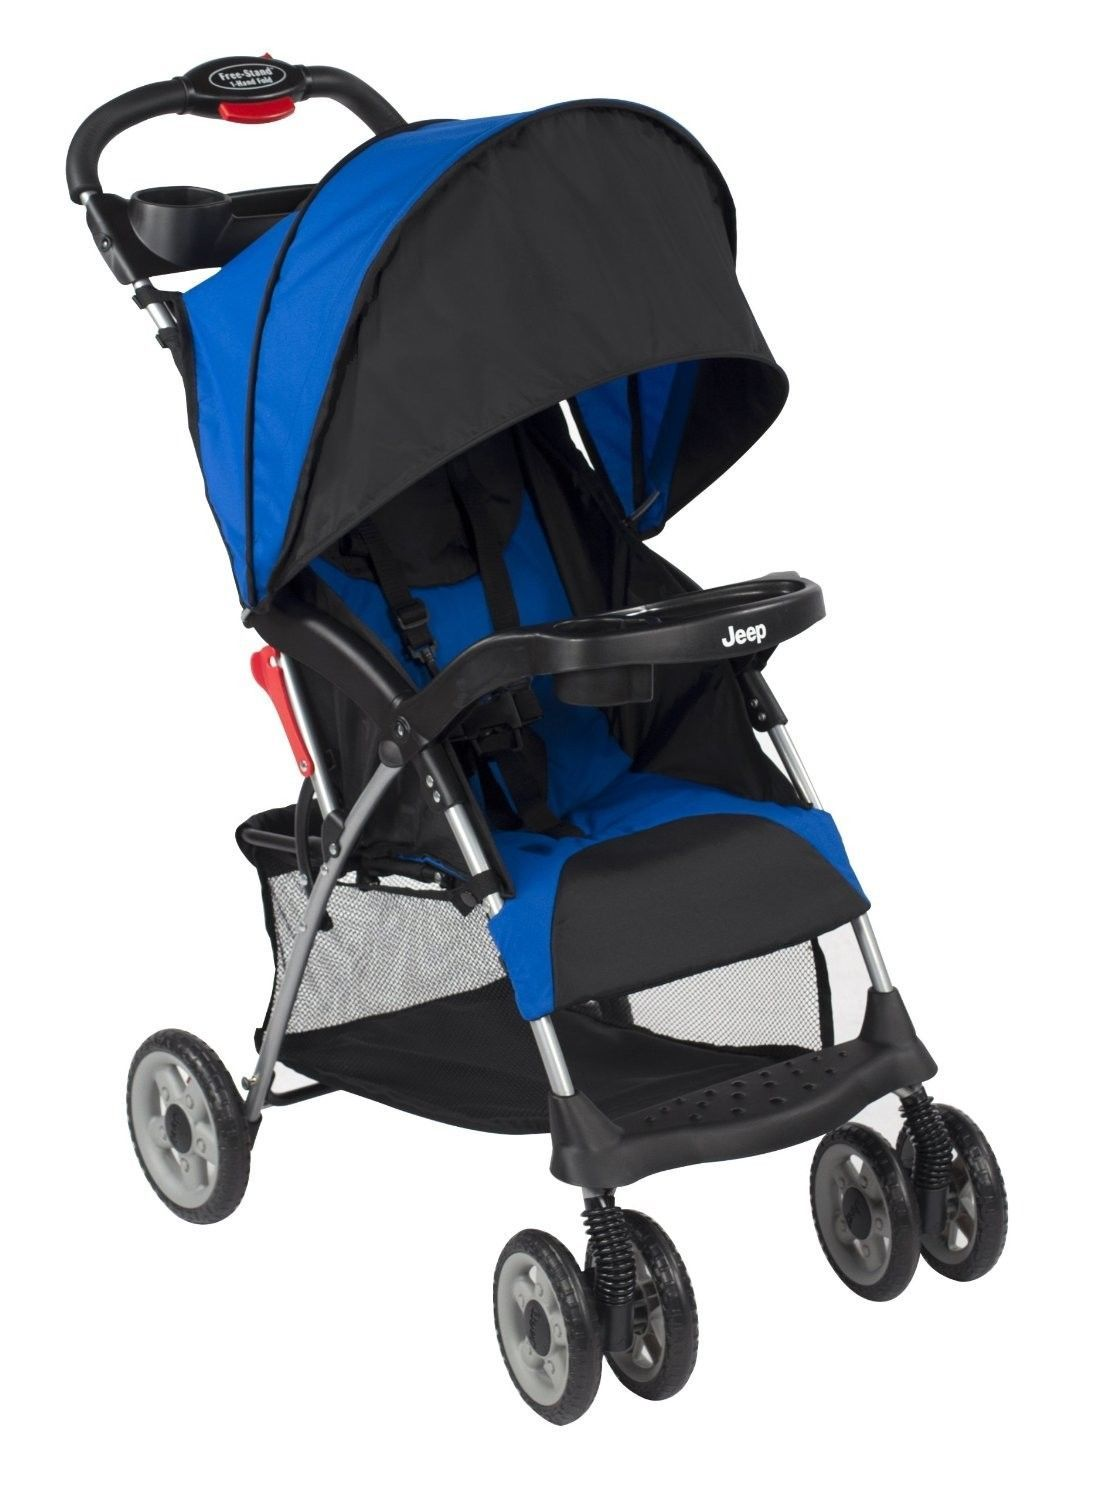 Jeep Cherokee Baby Infant Child Toddler Pram Lightweight Portable Stroller Seat Ebay Jeep Stroller Jeep Cherokee Sport